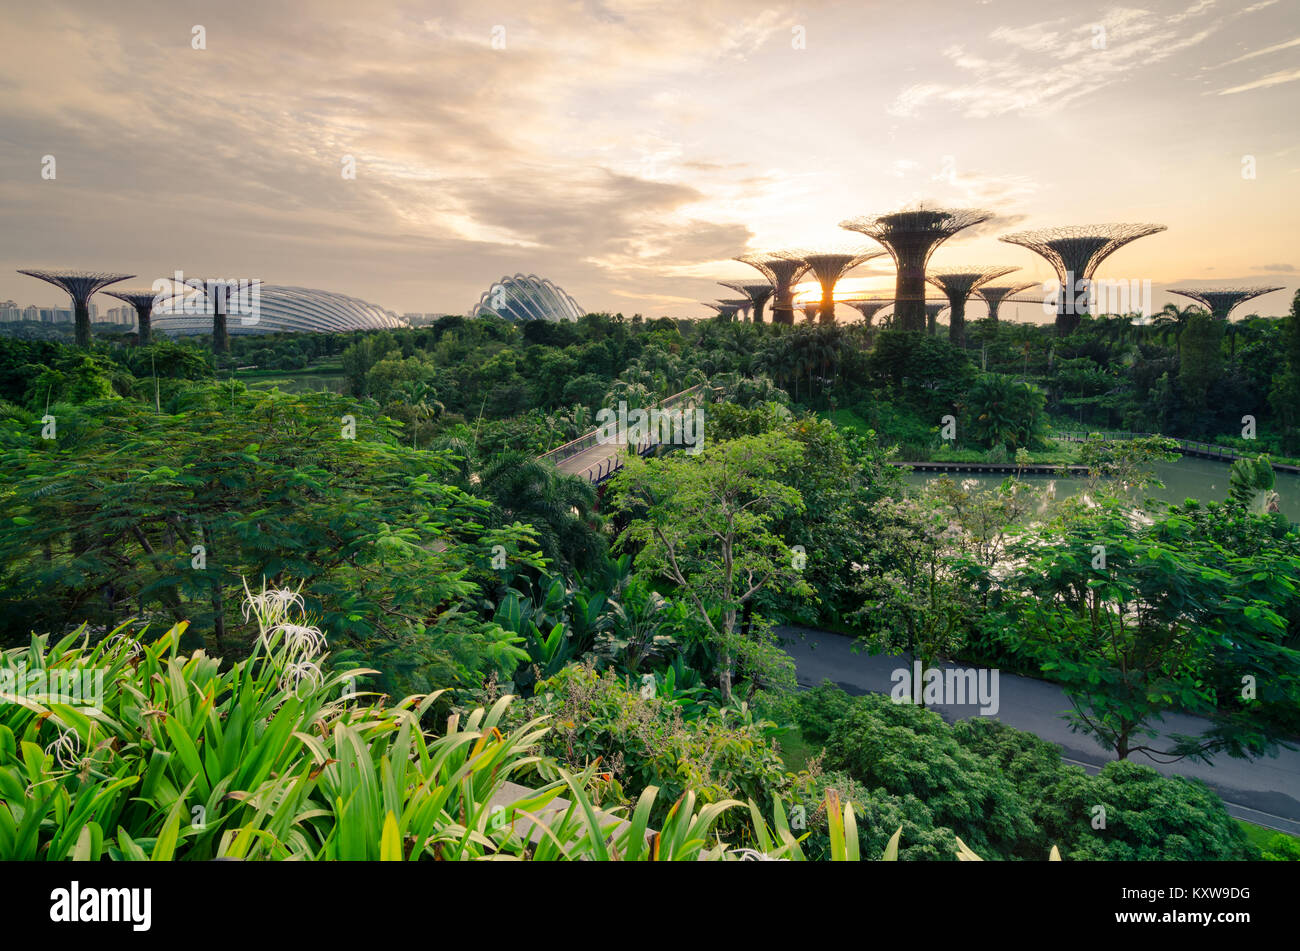 Beautiful Sunrise At Garden By The Bay. Calm Water At The Morning ...